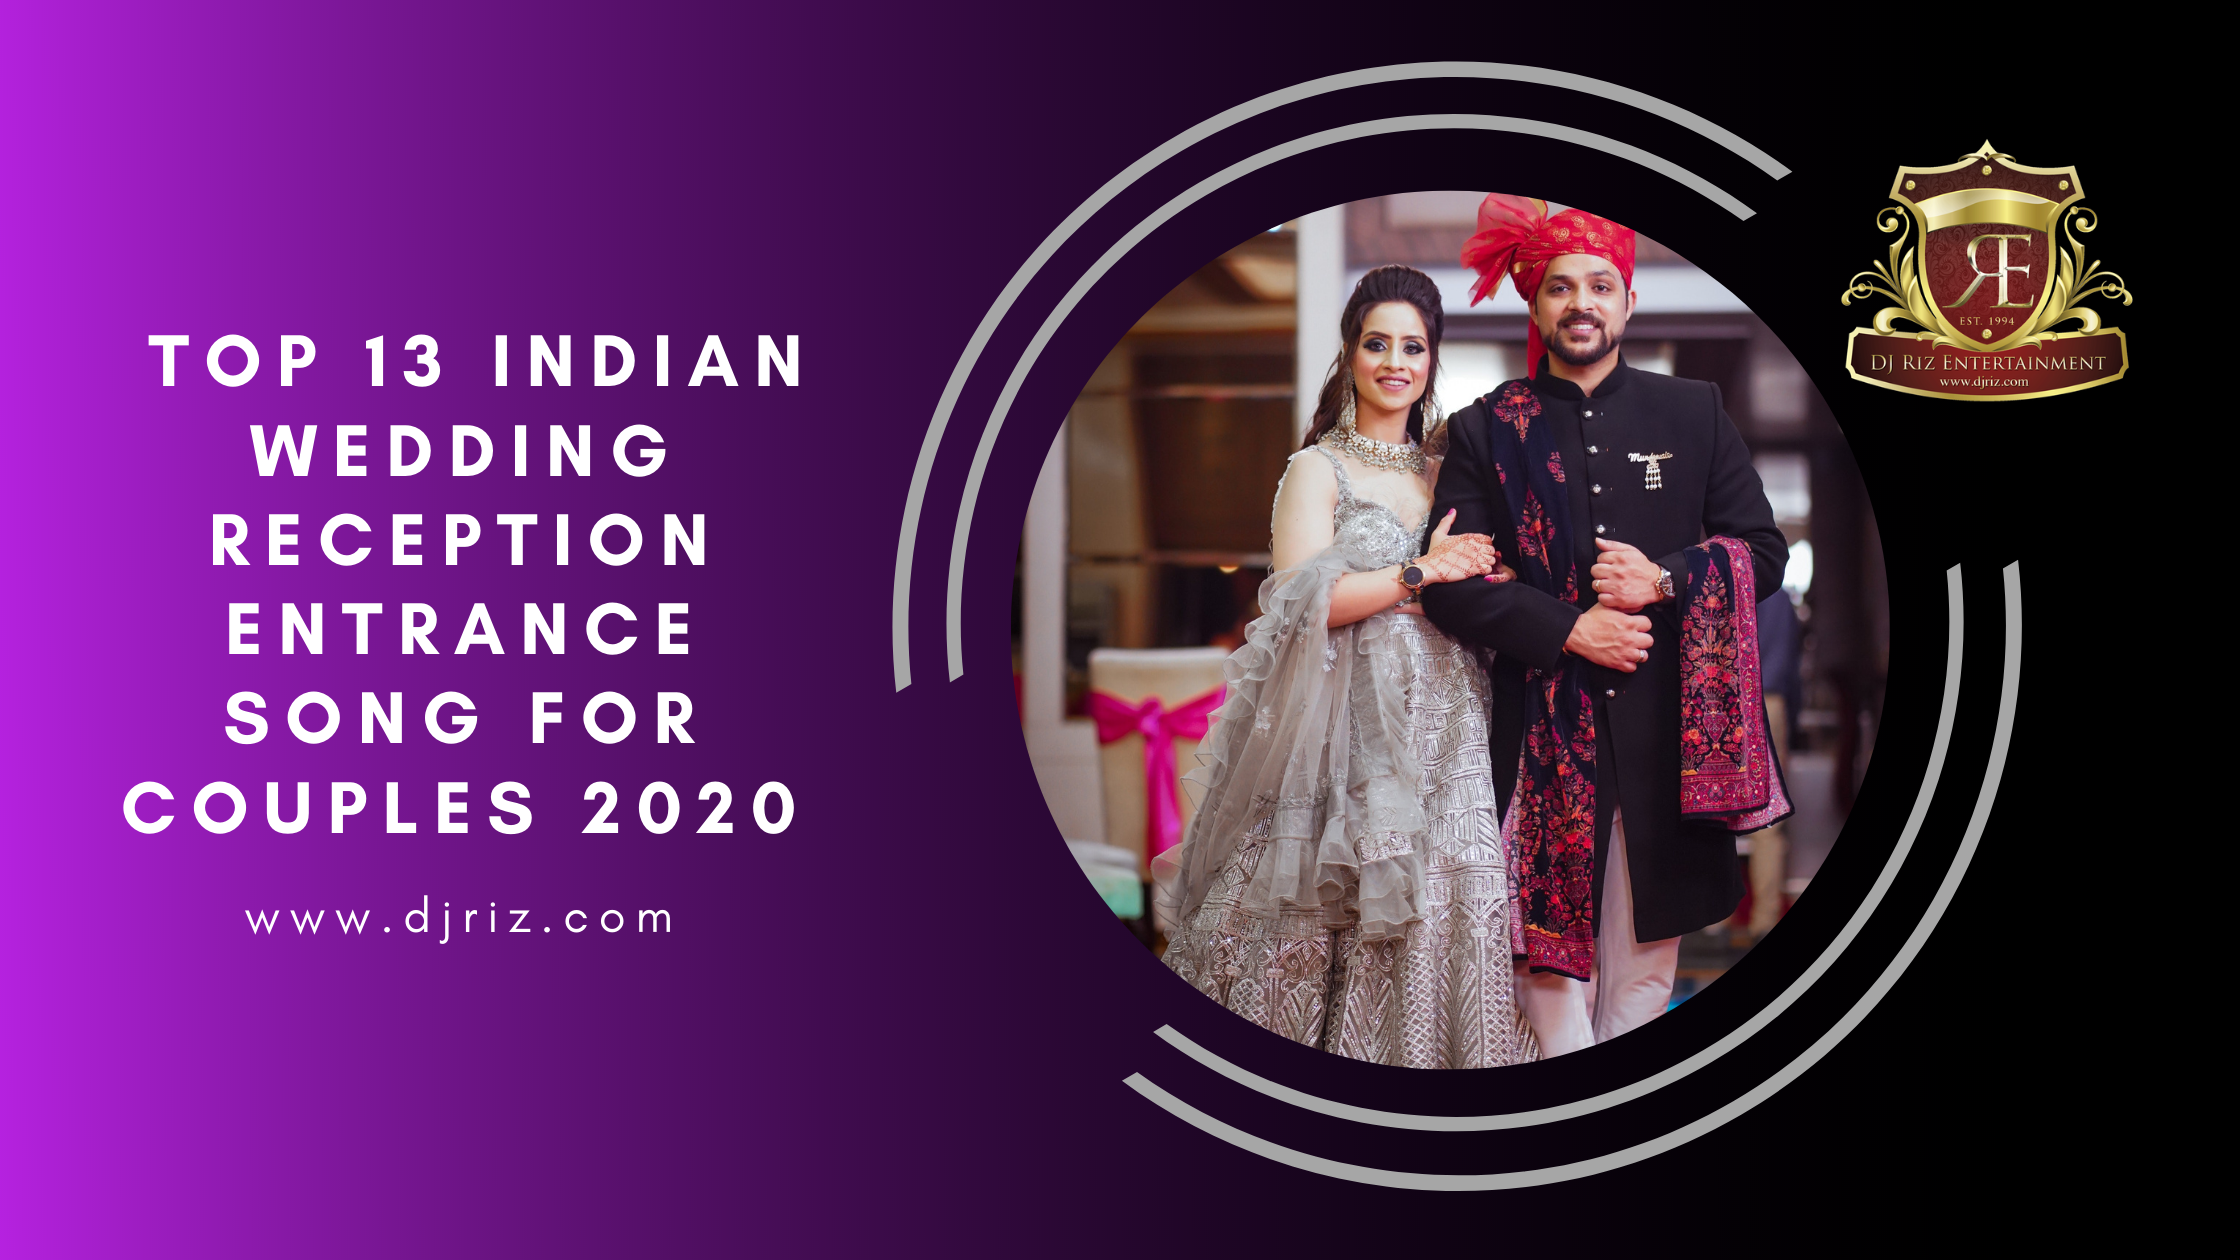 Indian Wedding Reception Entrance Song For Couples 2020